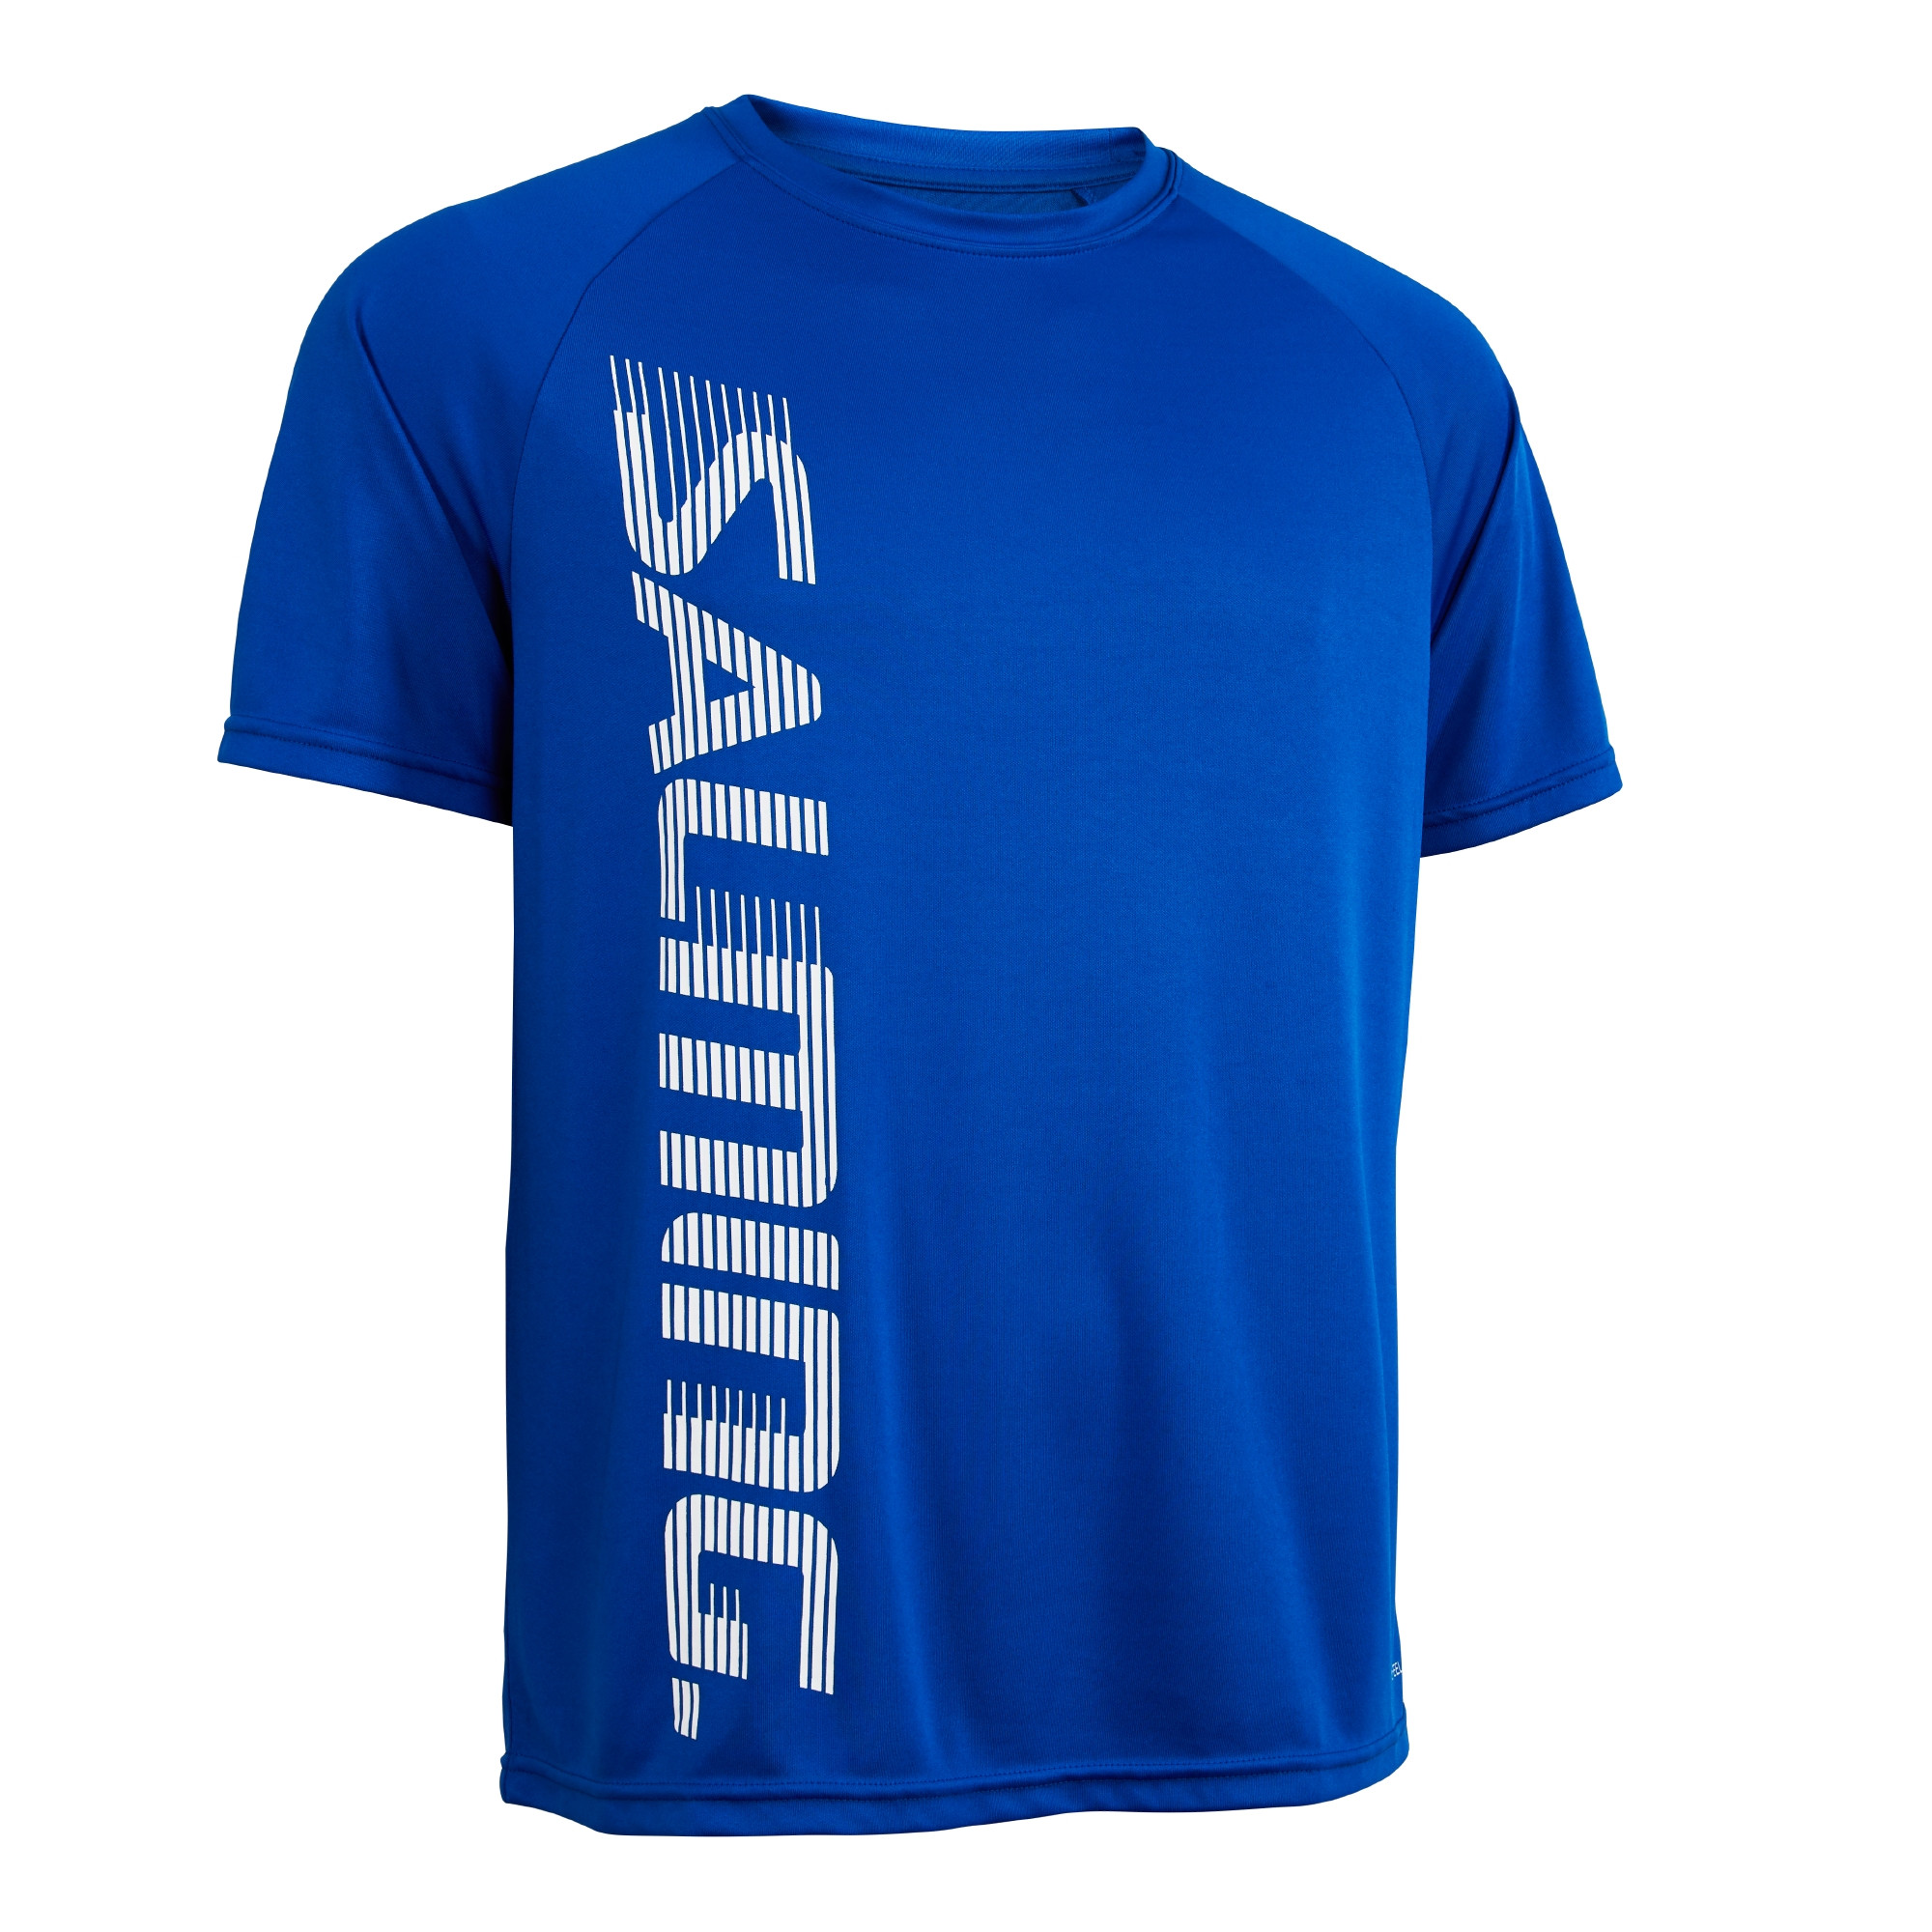 Salming Training Tee 2.0 XL, modrá